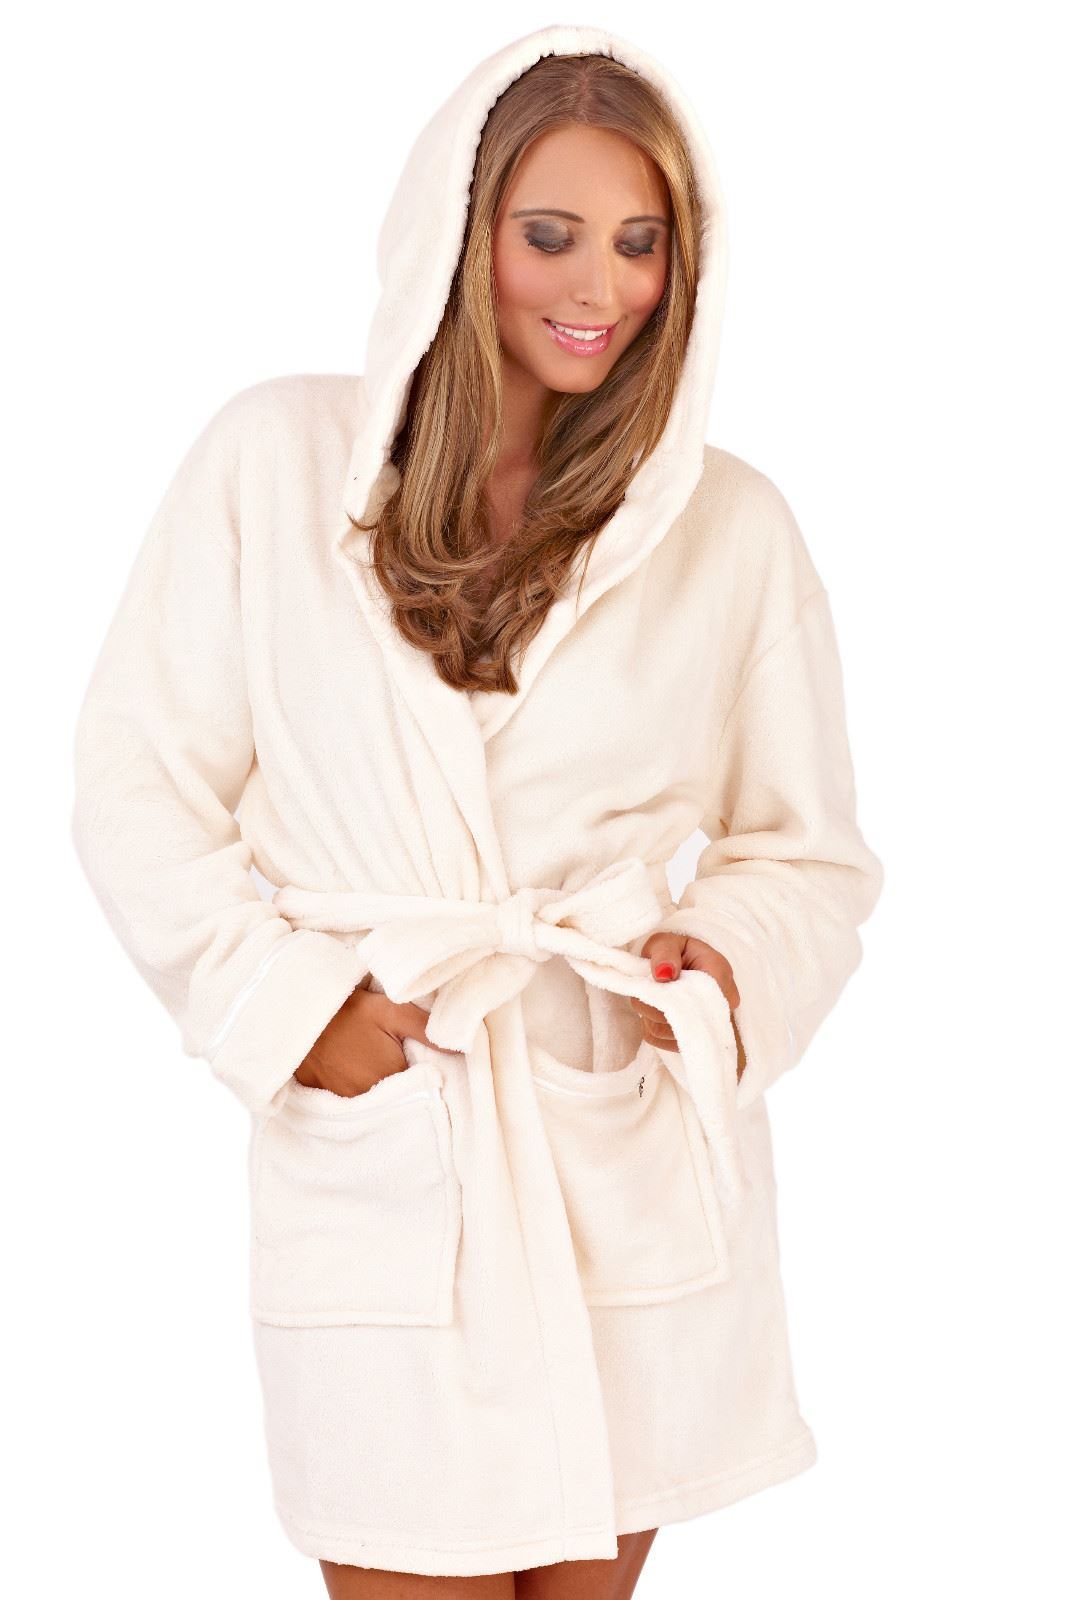 Shop for fleece bathrobe online at Target. Free shipping on purchases over $35 and save 5% every day with your Target REDcard.